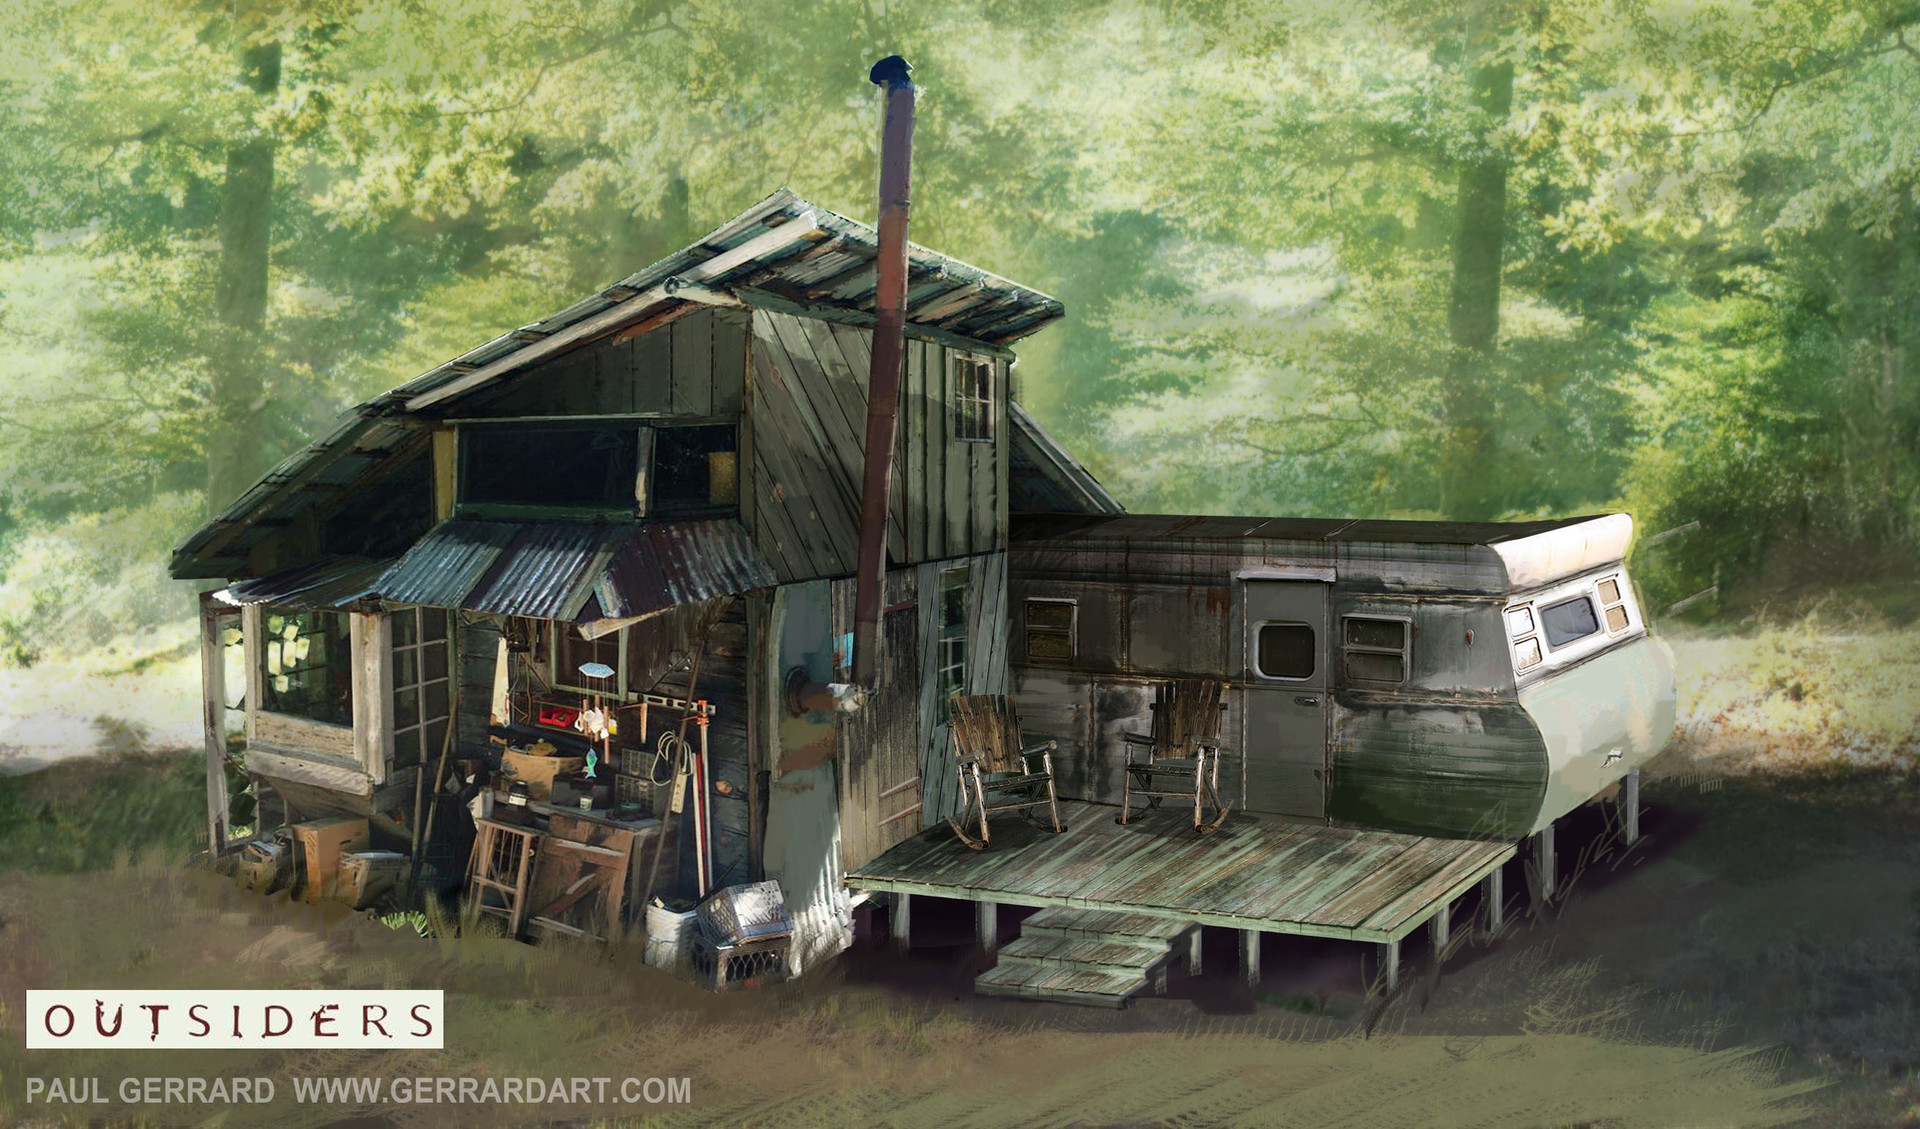 OUTSIDERS : TV SHOW